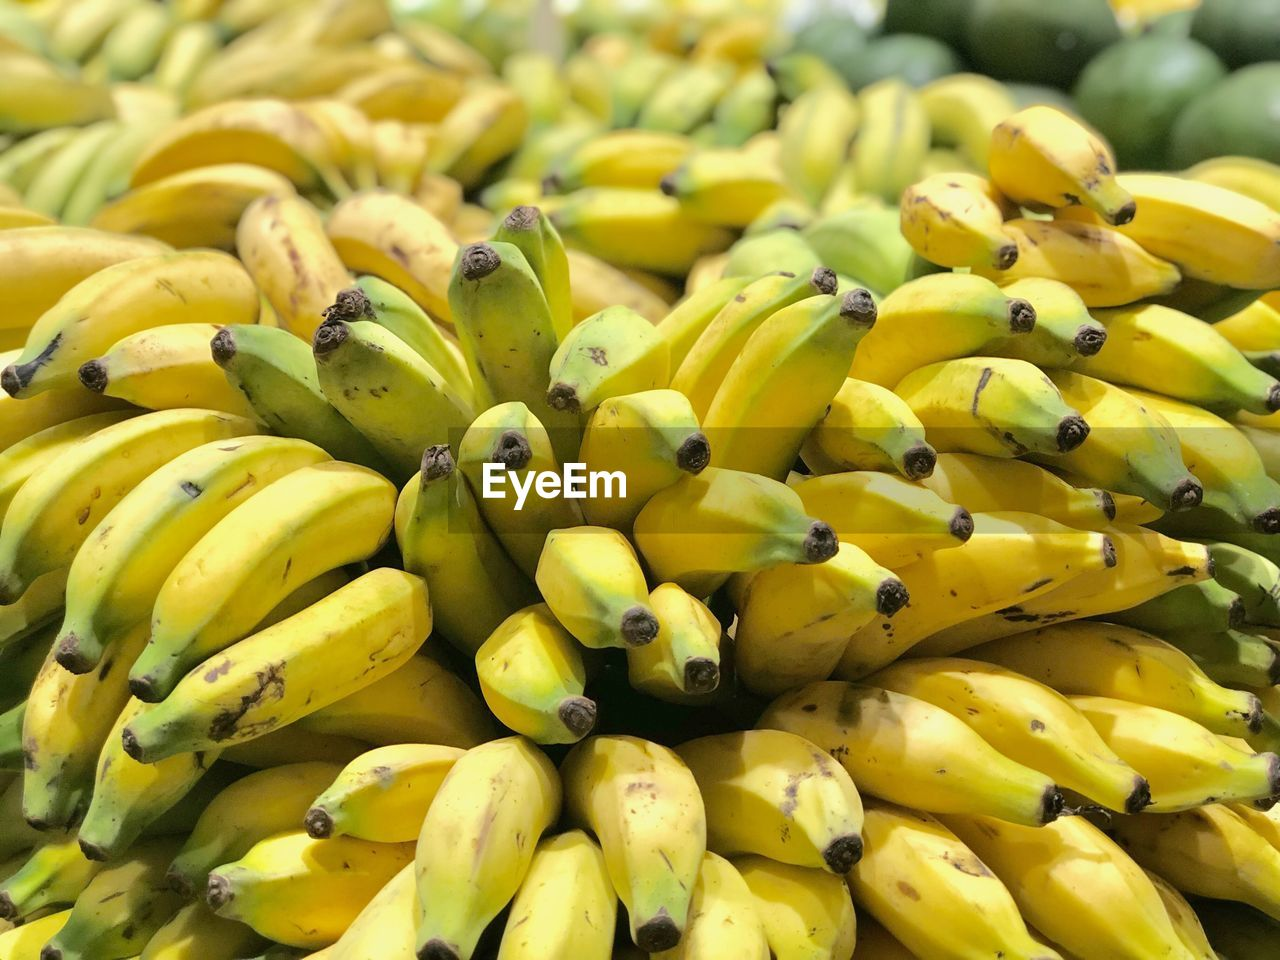 healthy eating, yellow, food and drink, food, freshness, wellbeing, fruit, large group of objects, banana, market, for sale, abundance, retail, market stall, close-up, still life, no people, full frame, day, backgrounds, retail display, ripe, consumerism